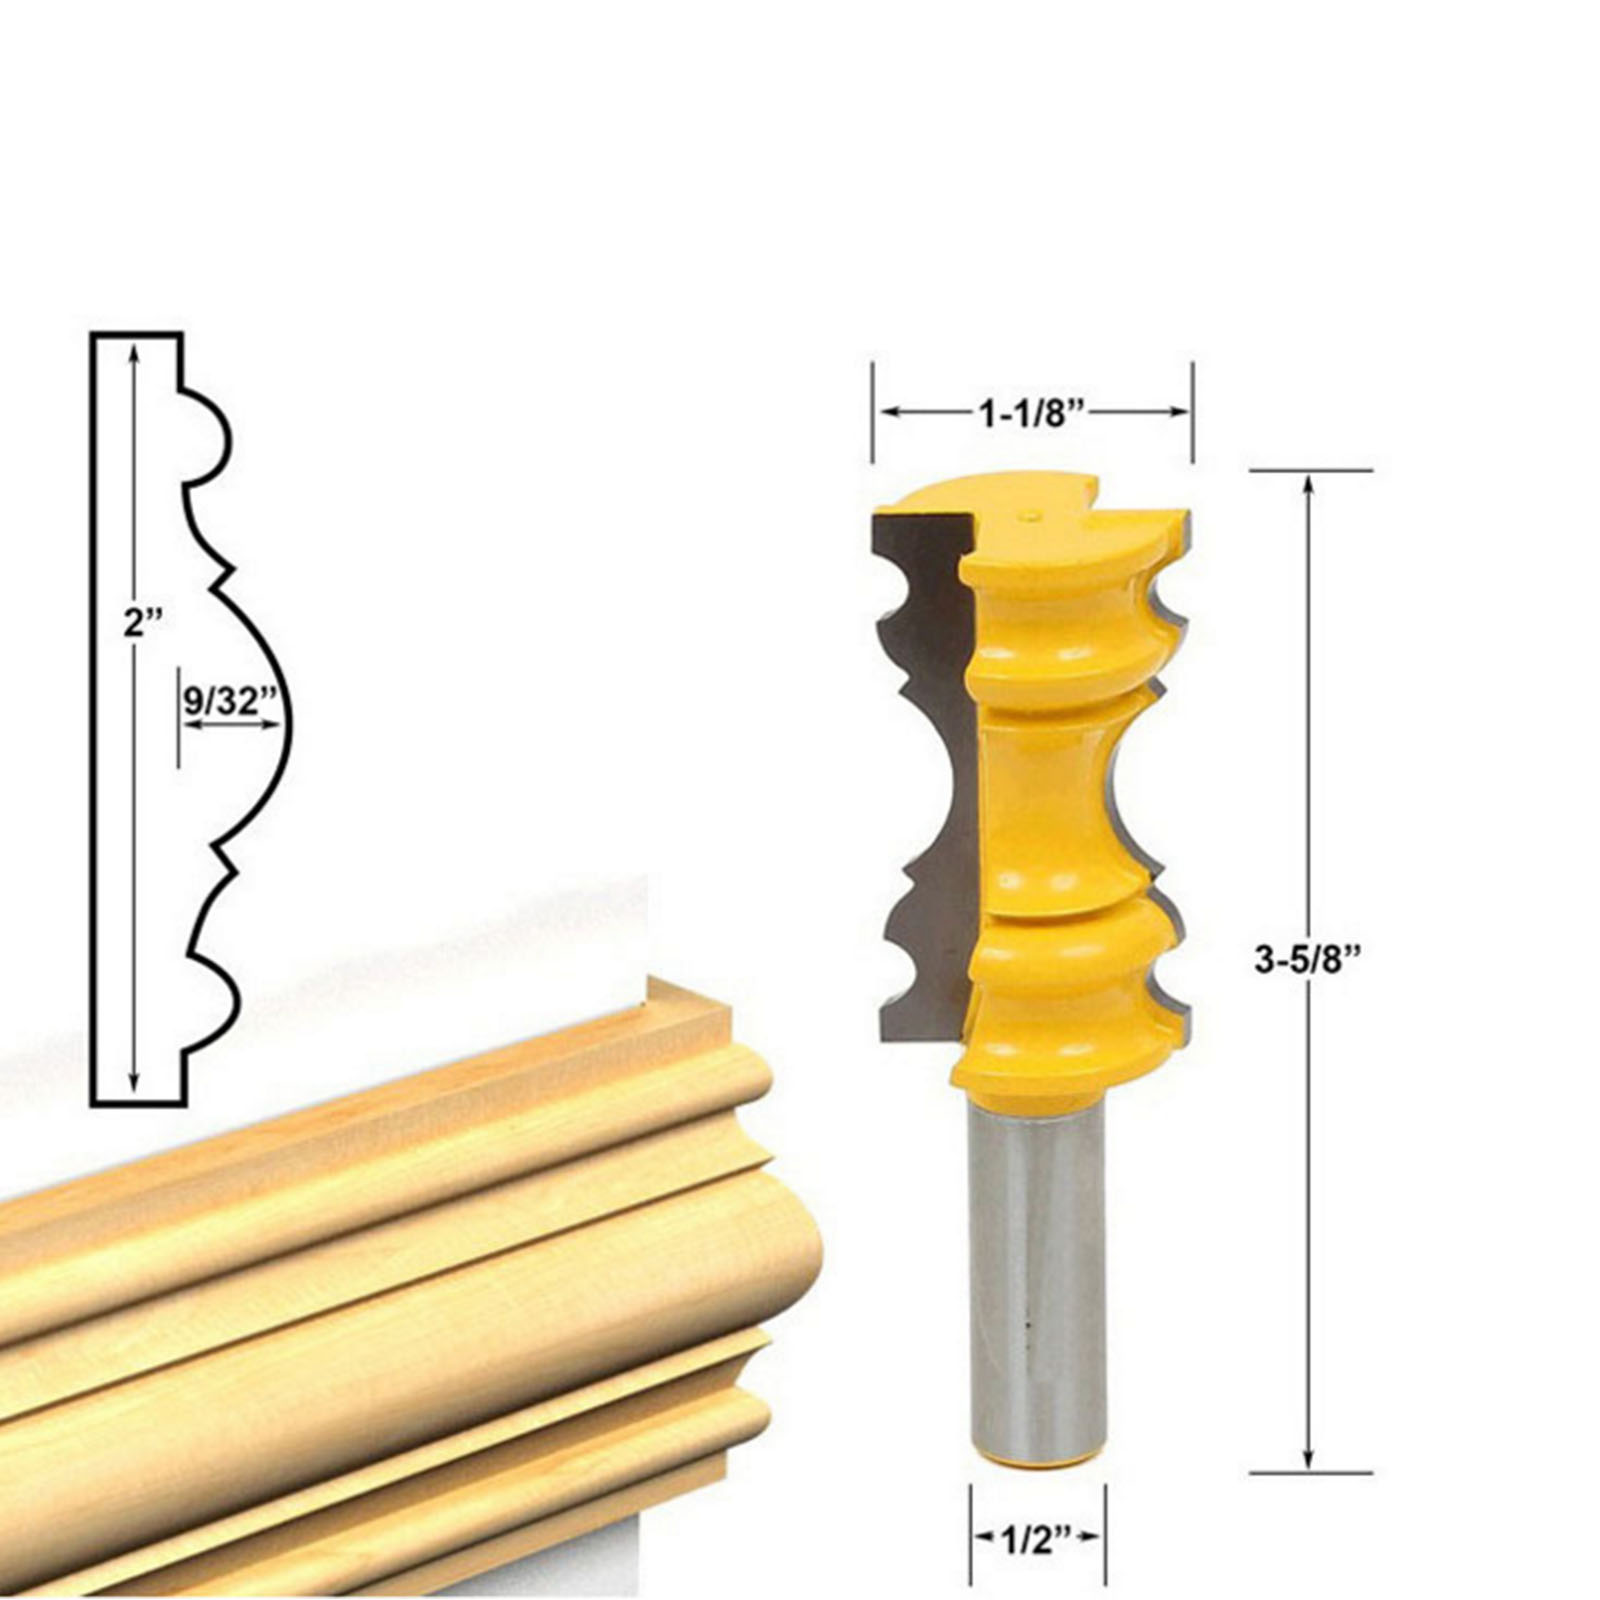 DRELD 1Pc 1/2 Shank Carbide Rail Molding Router Bit Woodworking Milling Cutter Cabinet Plywood Wood Cutting Bit Carpentry Tools 16pcs carbide ball blade woodworking milling cutter molding tool beads router bit drills bit set 14 25mm